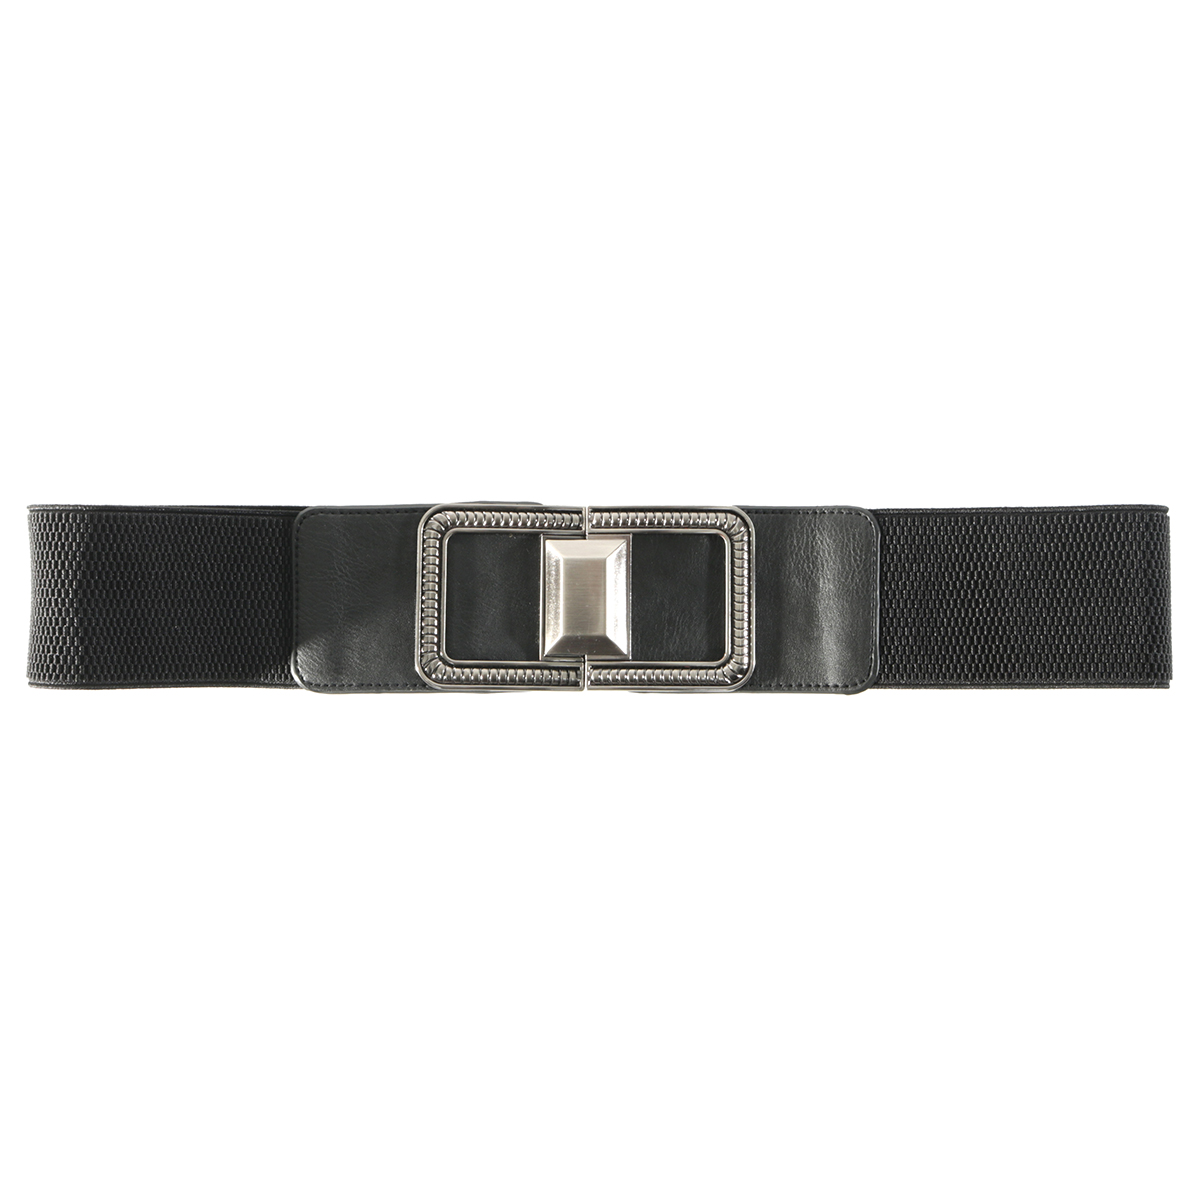 "BLK 31"" SQUARE BUCKLE BELT"